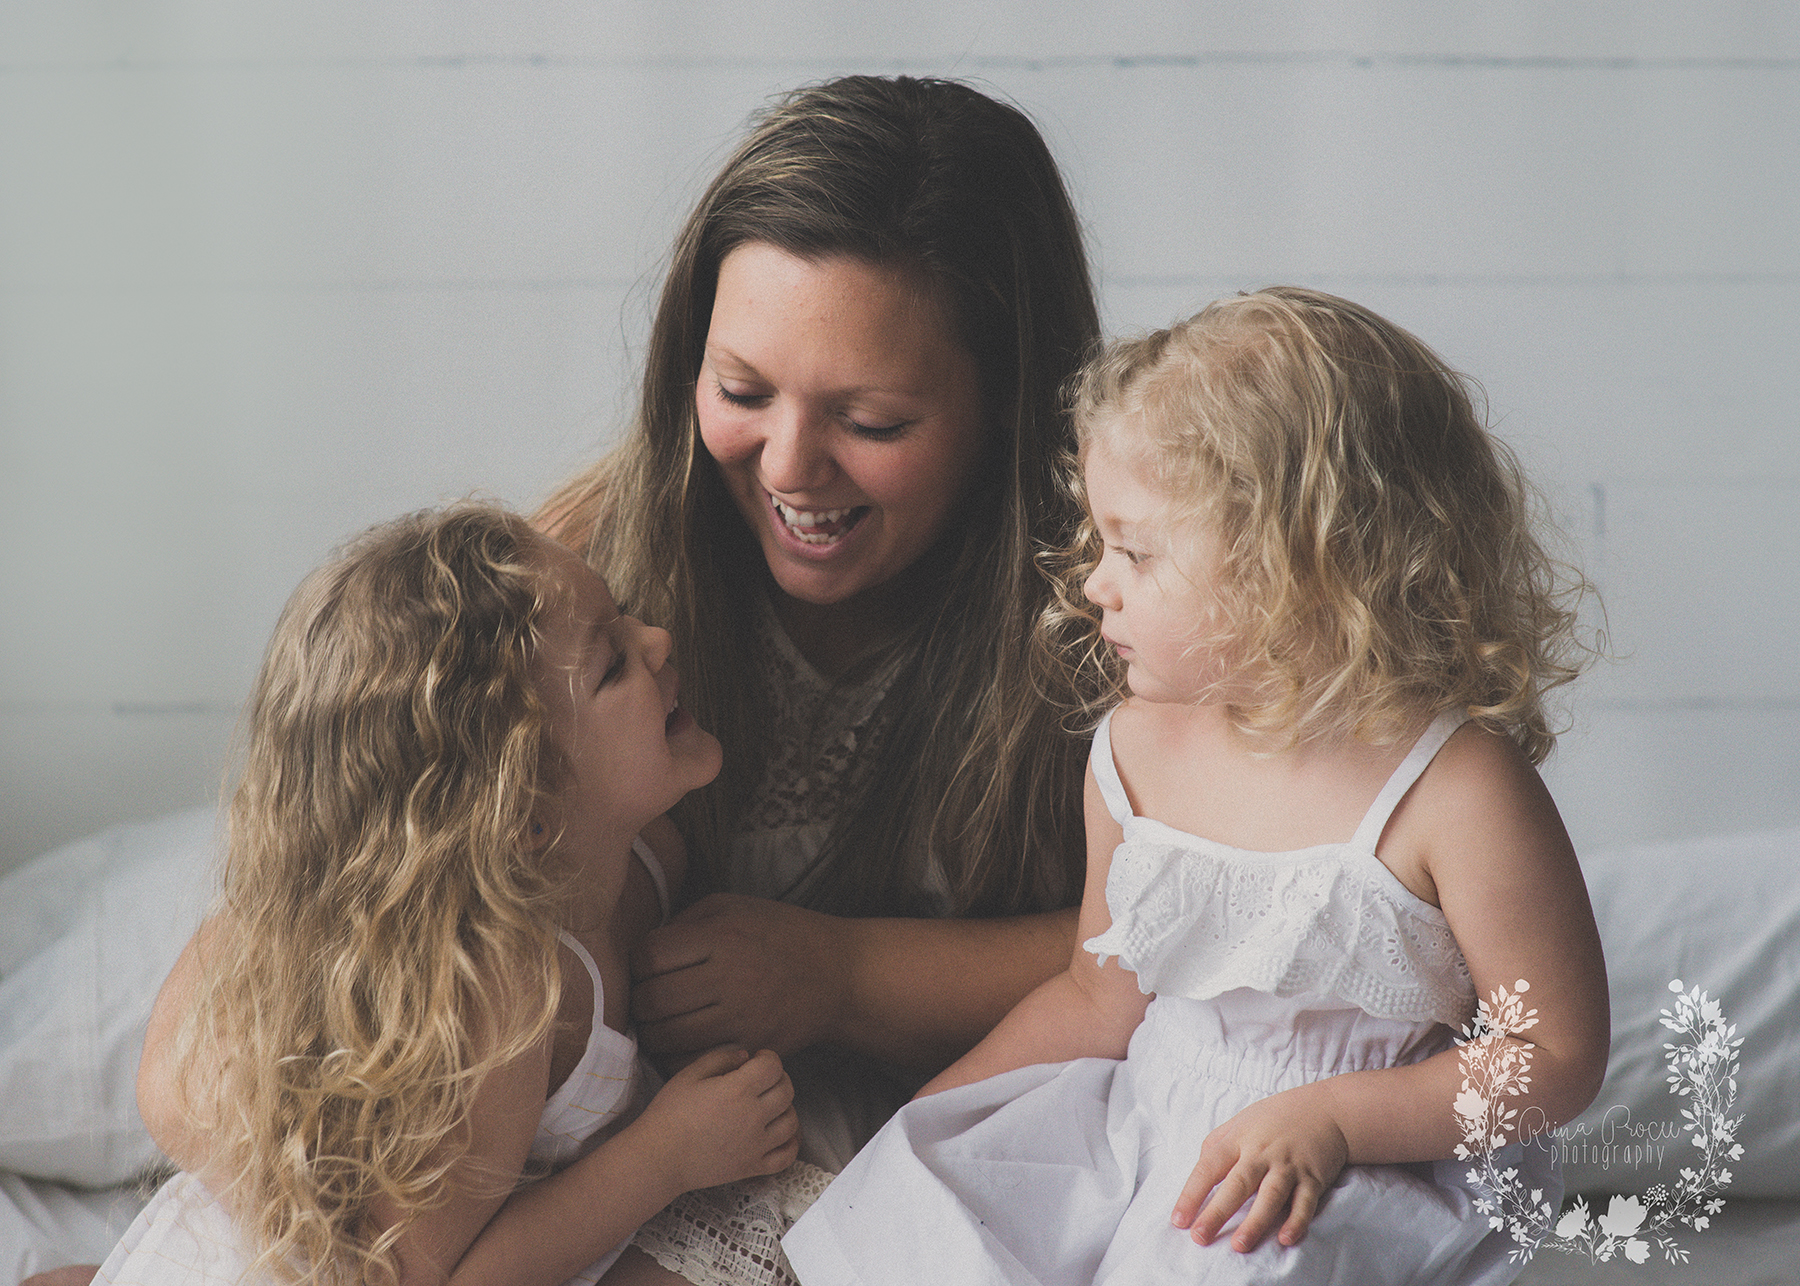 mother-child-love-family-portraits-montreal-photographer08.png